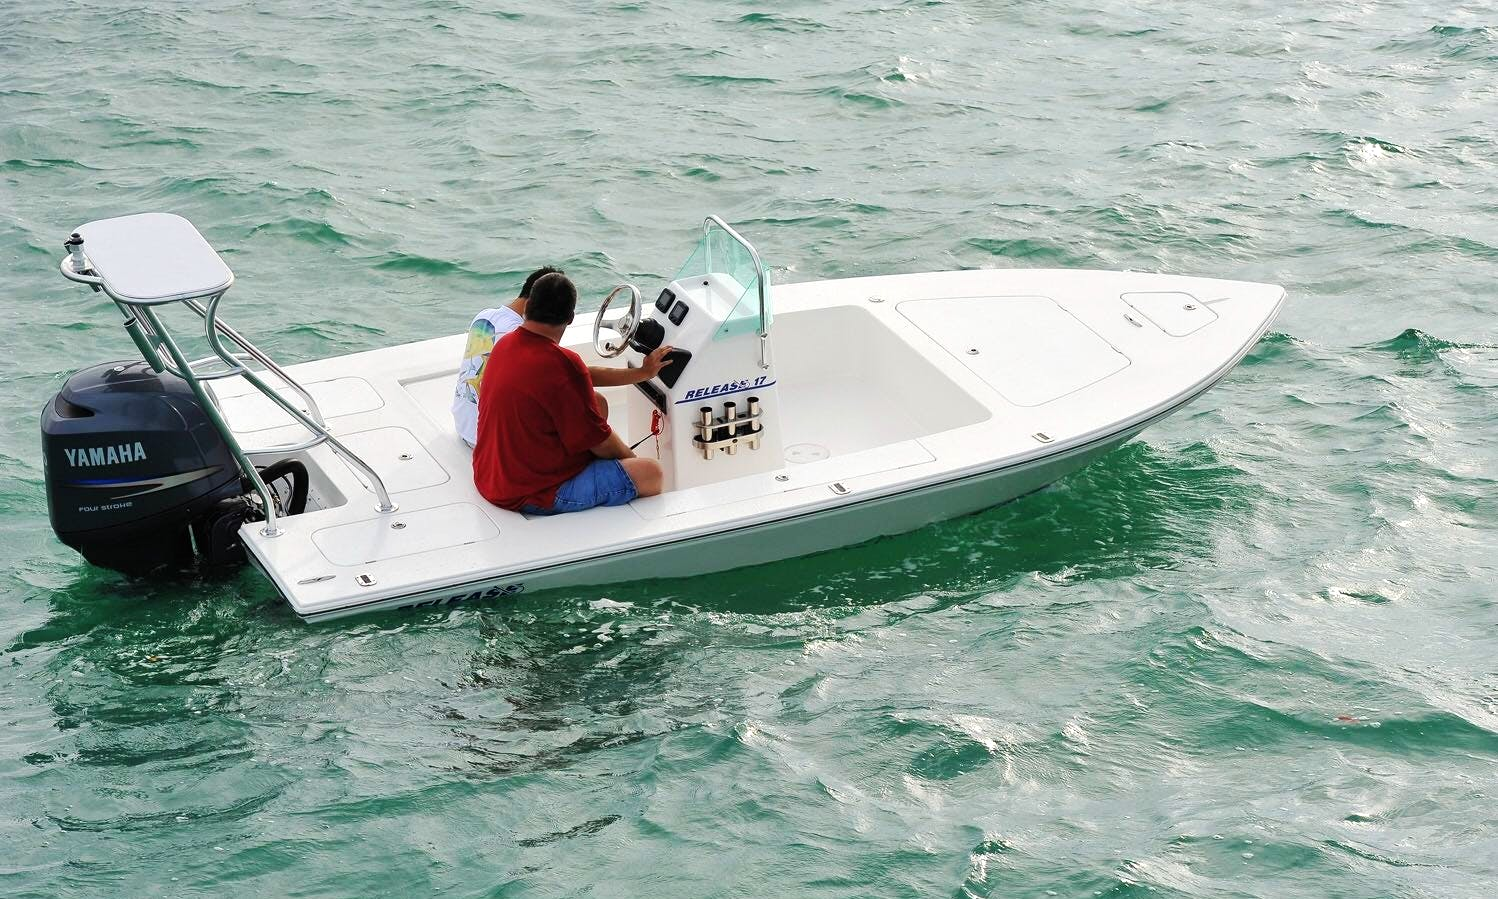 Rent a Skiff Boat in Nassau, The Bahamas for 3 People on your next fishing adventure